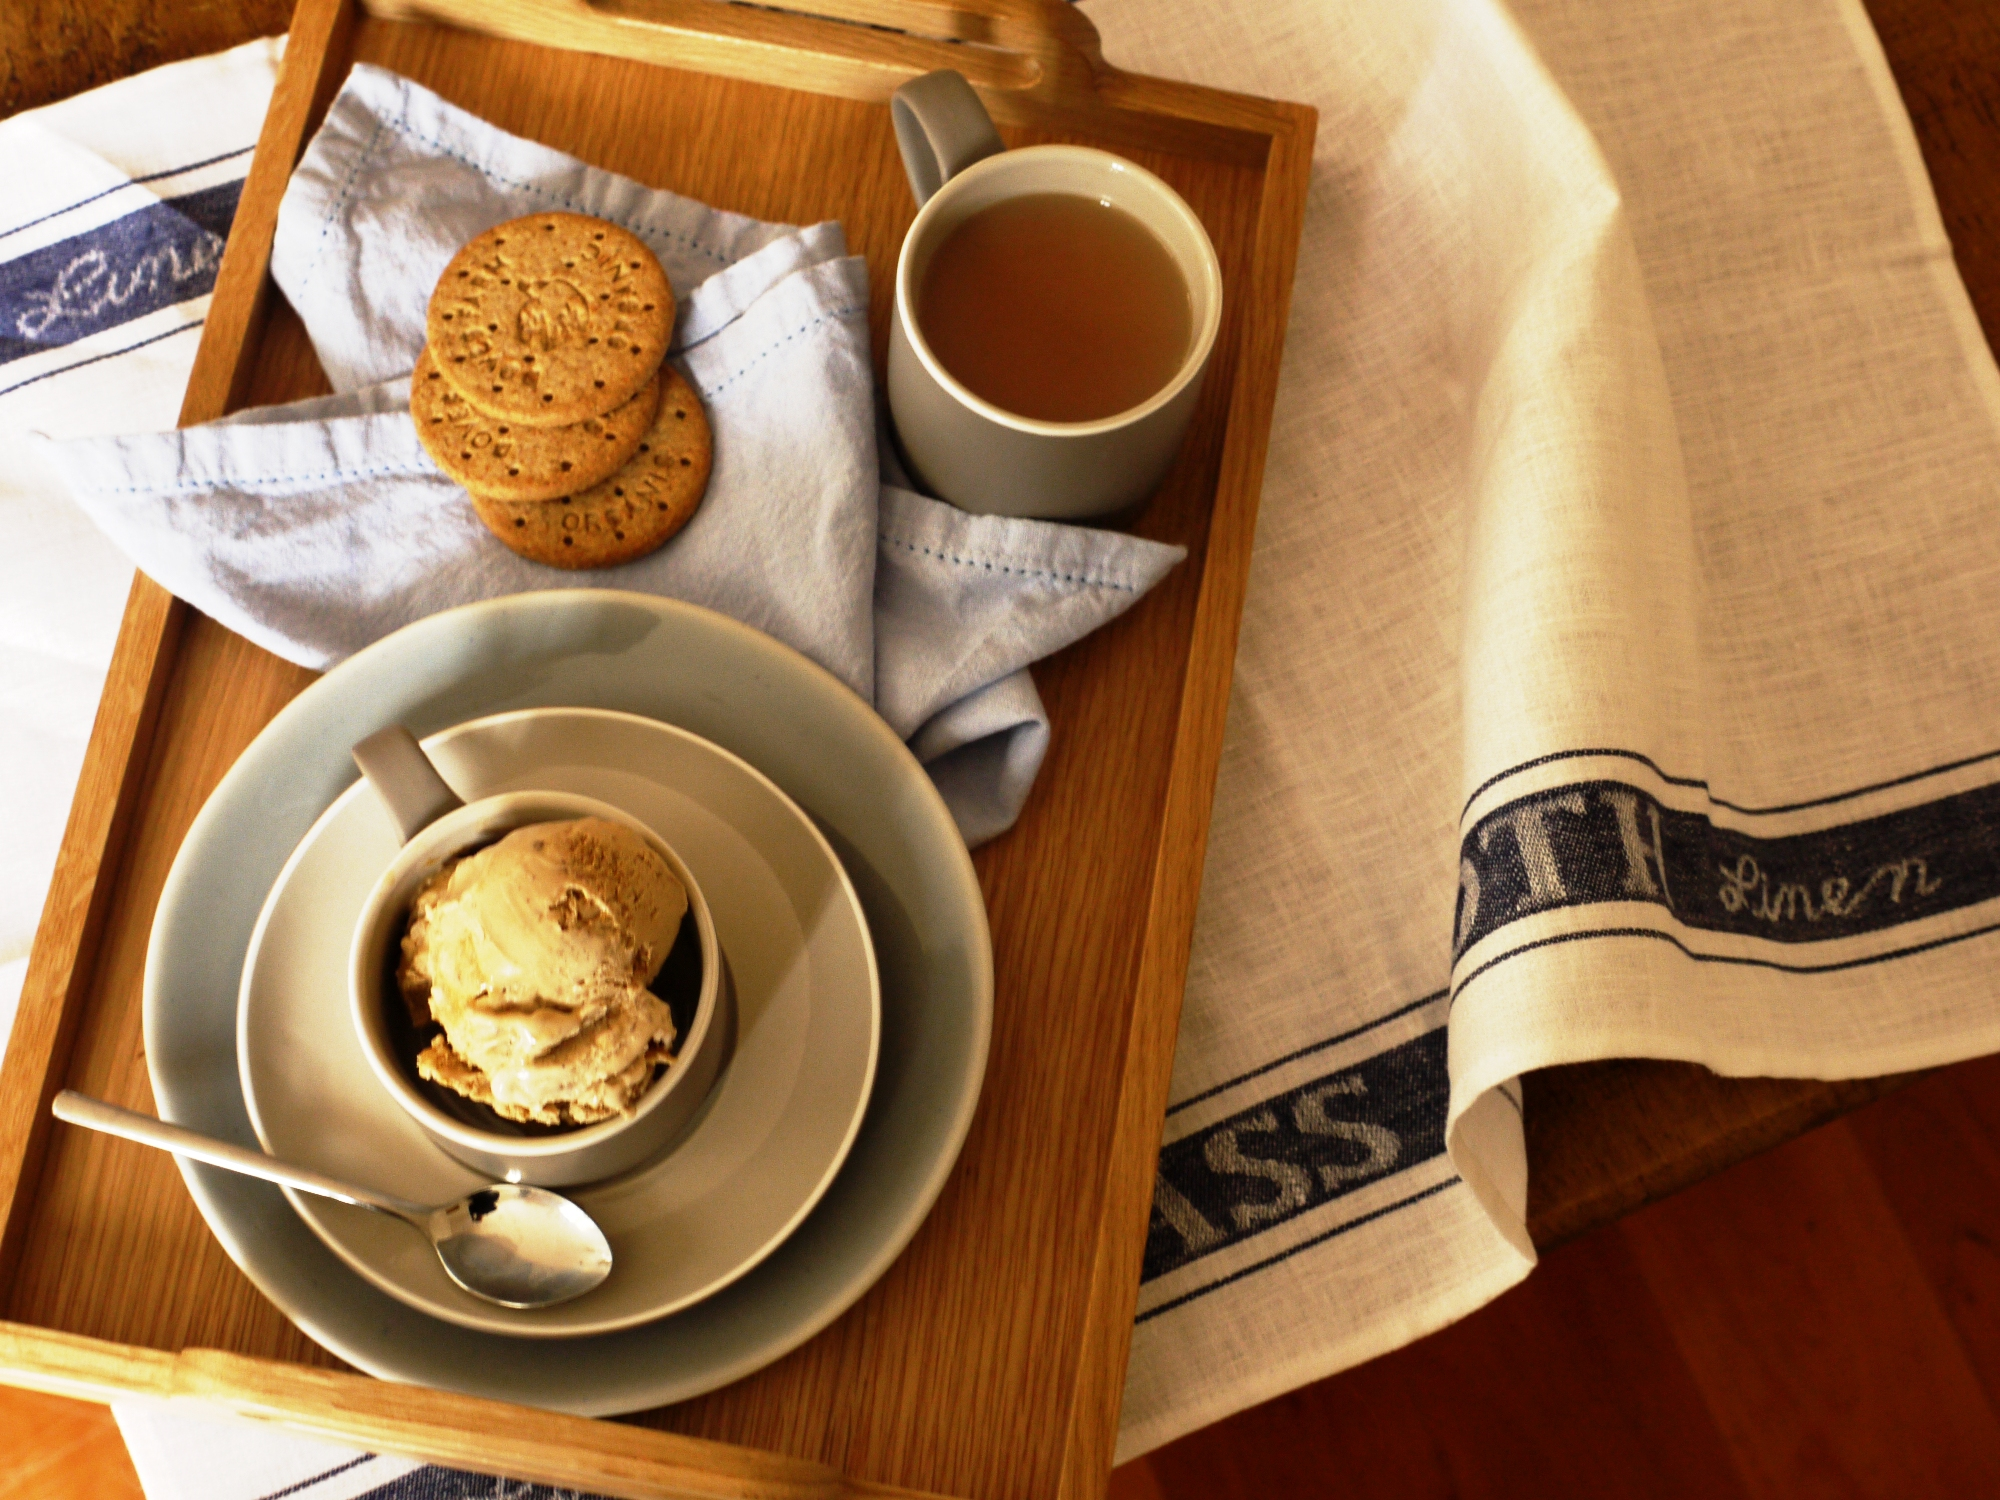 Tea & Biscuit Ice Cream with a Salty Caramel Swirl